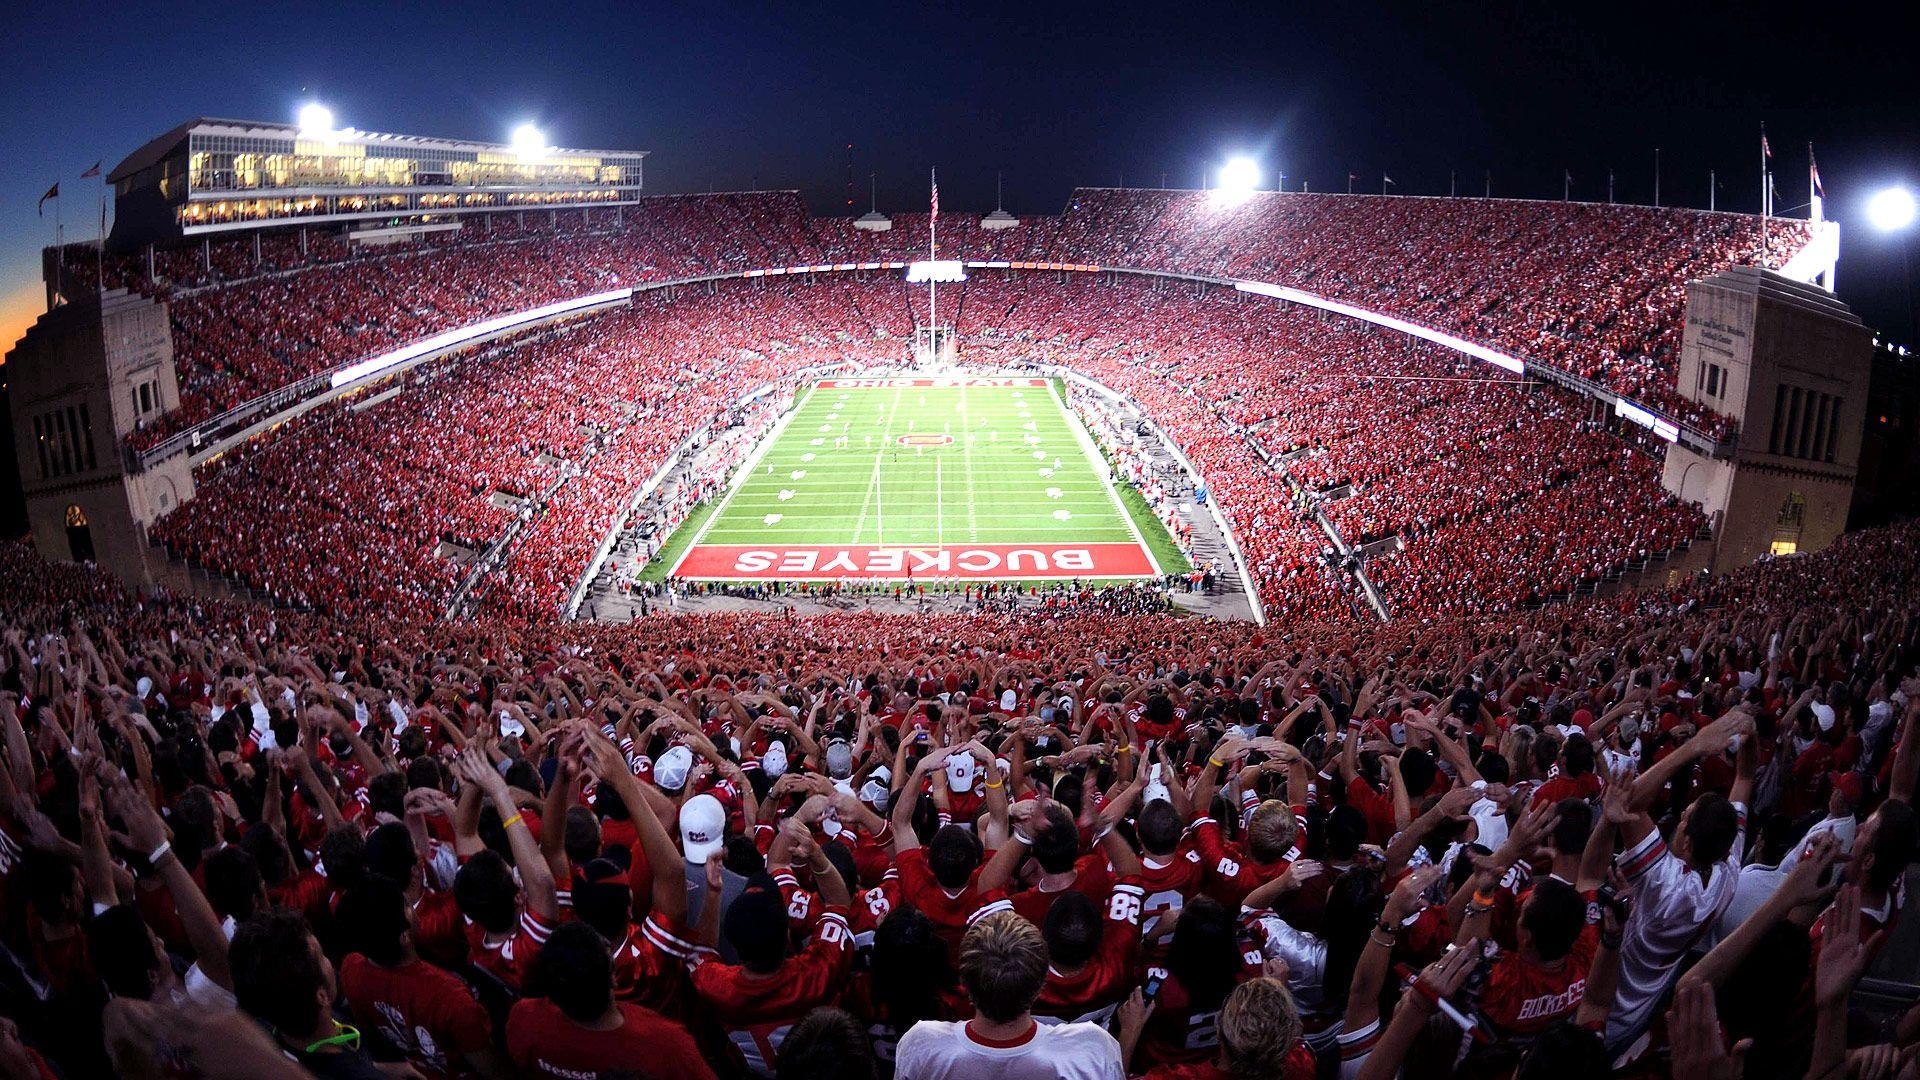 Pictures Of College Football Stadiums Google Search Ohio State Buckeyes Football Ohio State Buckeyes Ohio State Football